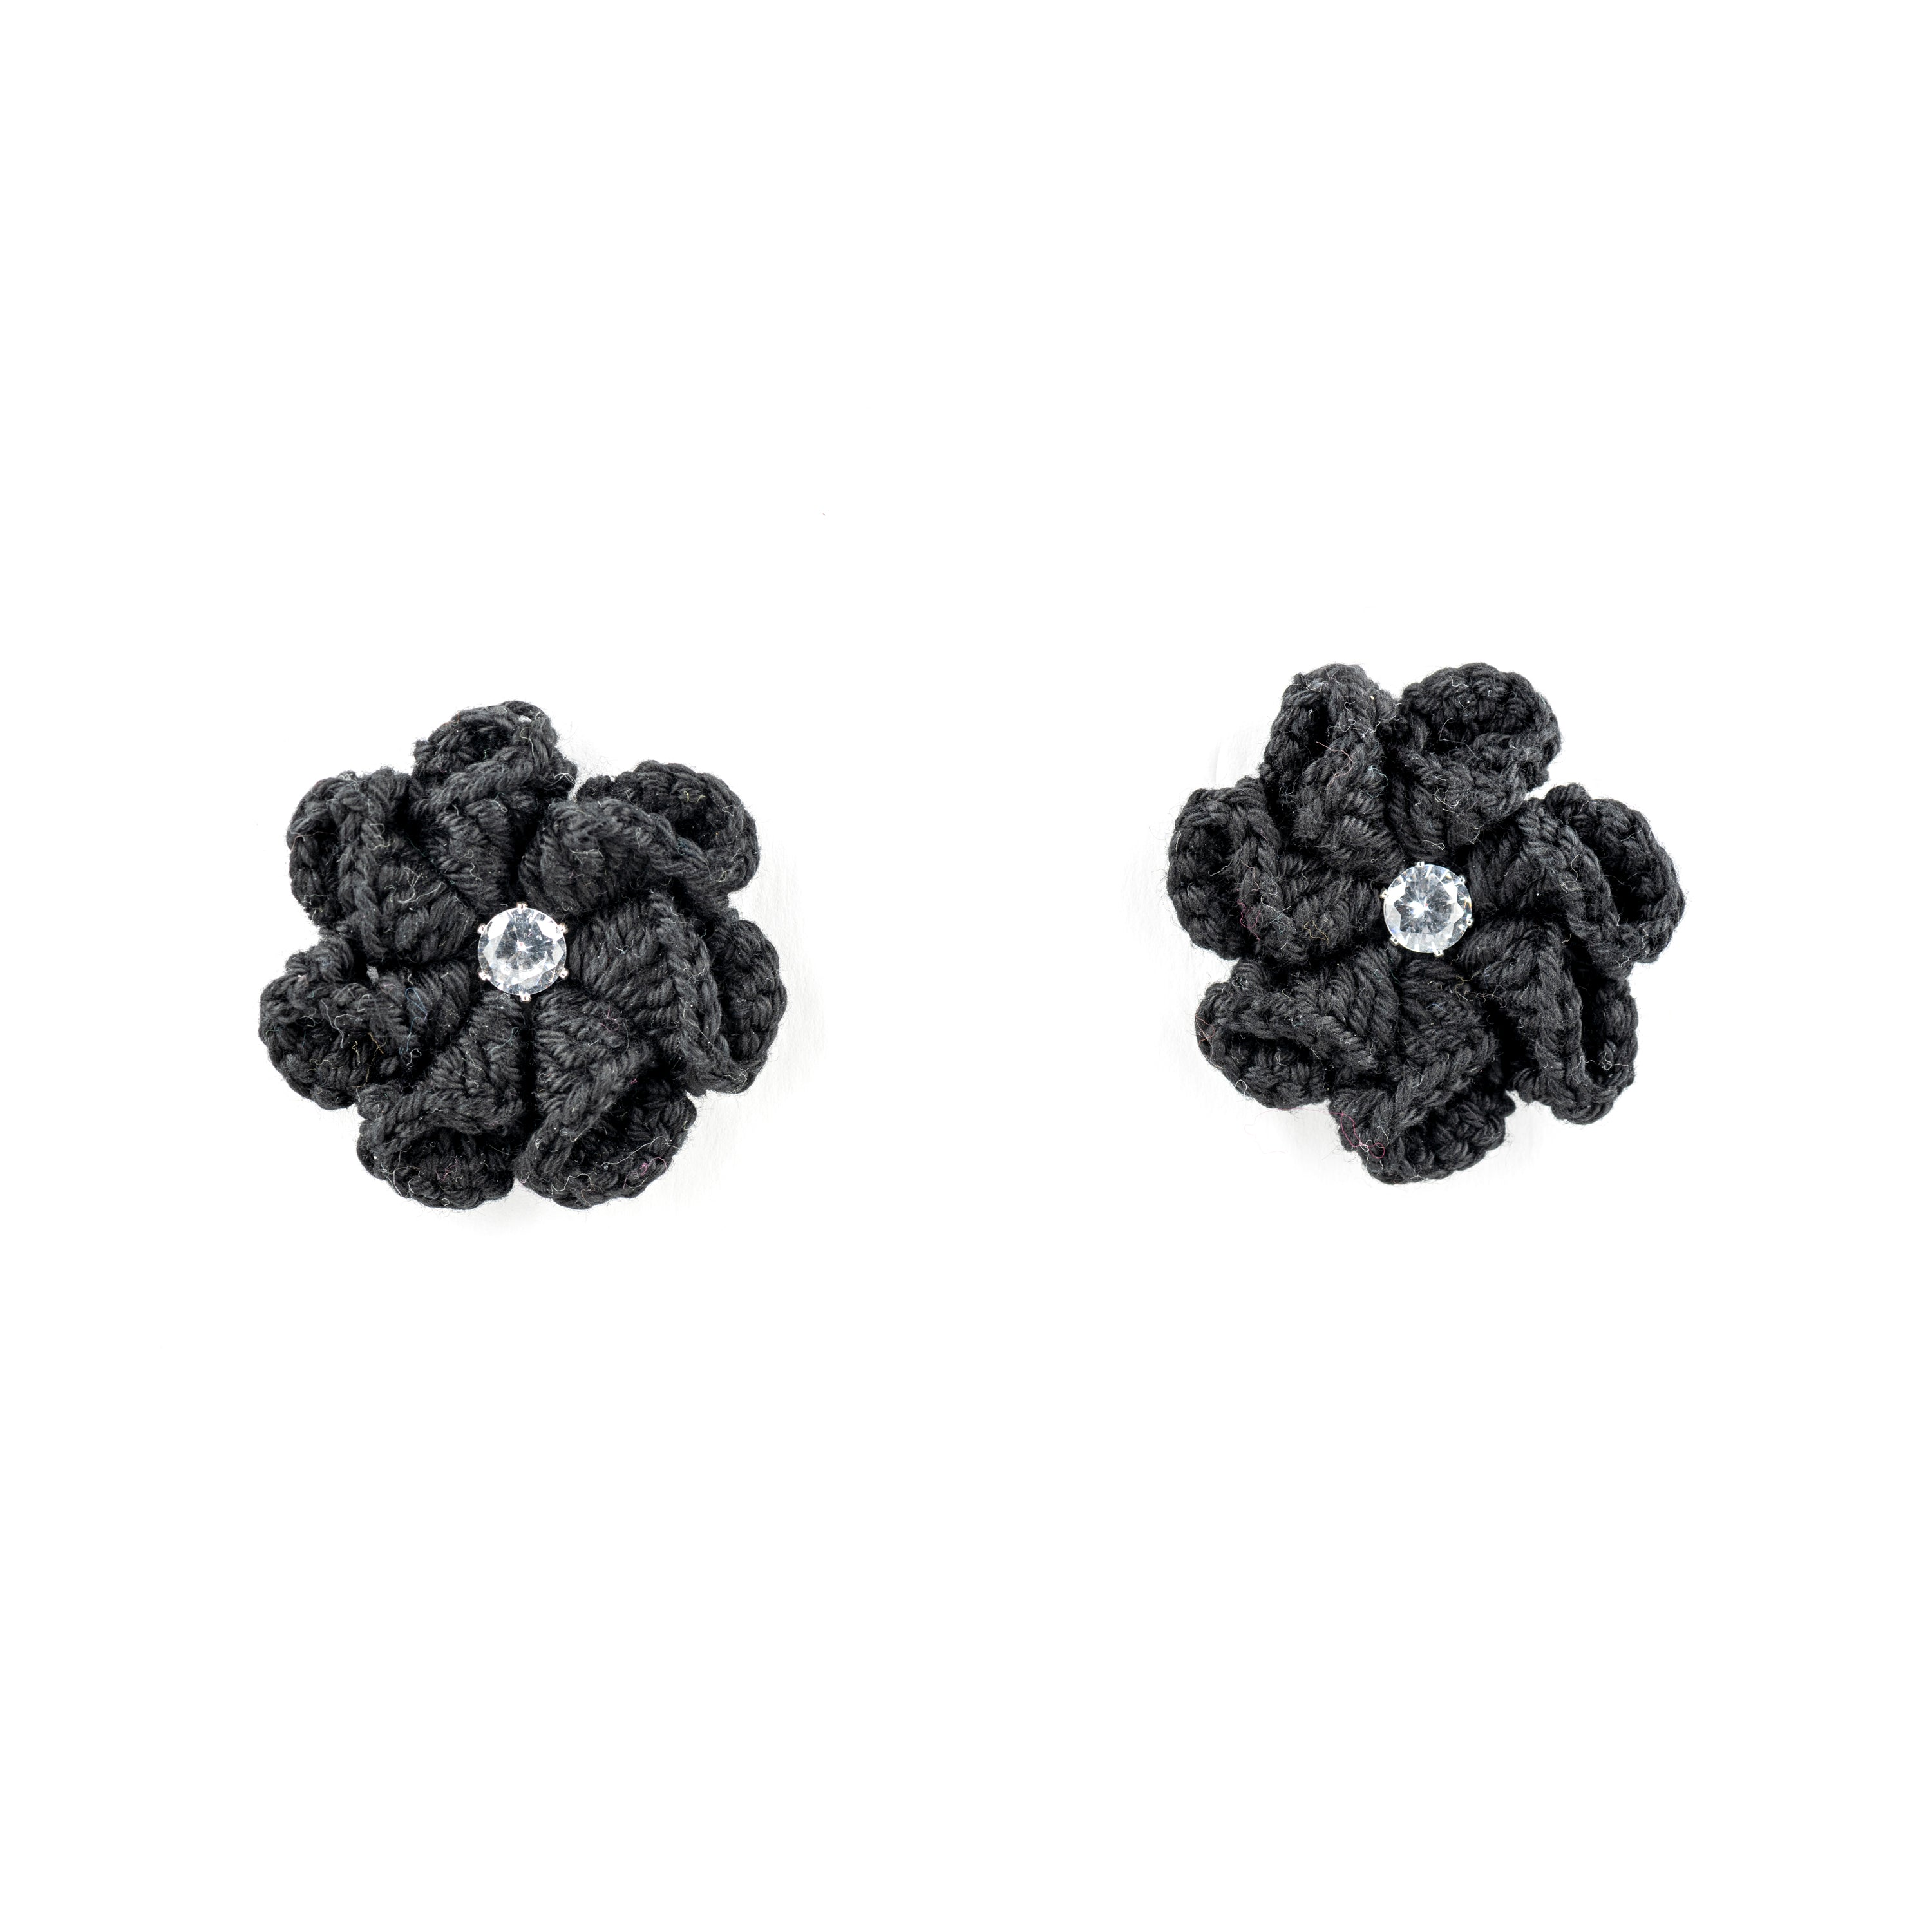 Crocheteria earrings - Andy & Rachel Studio